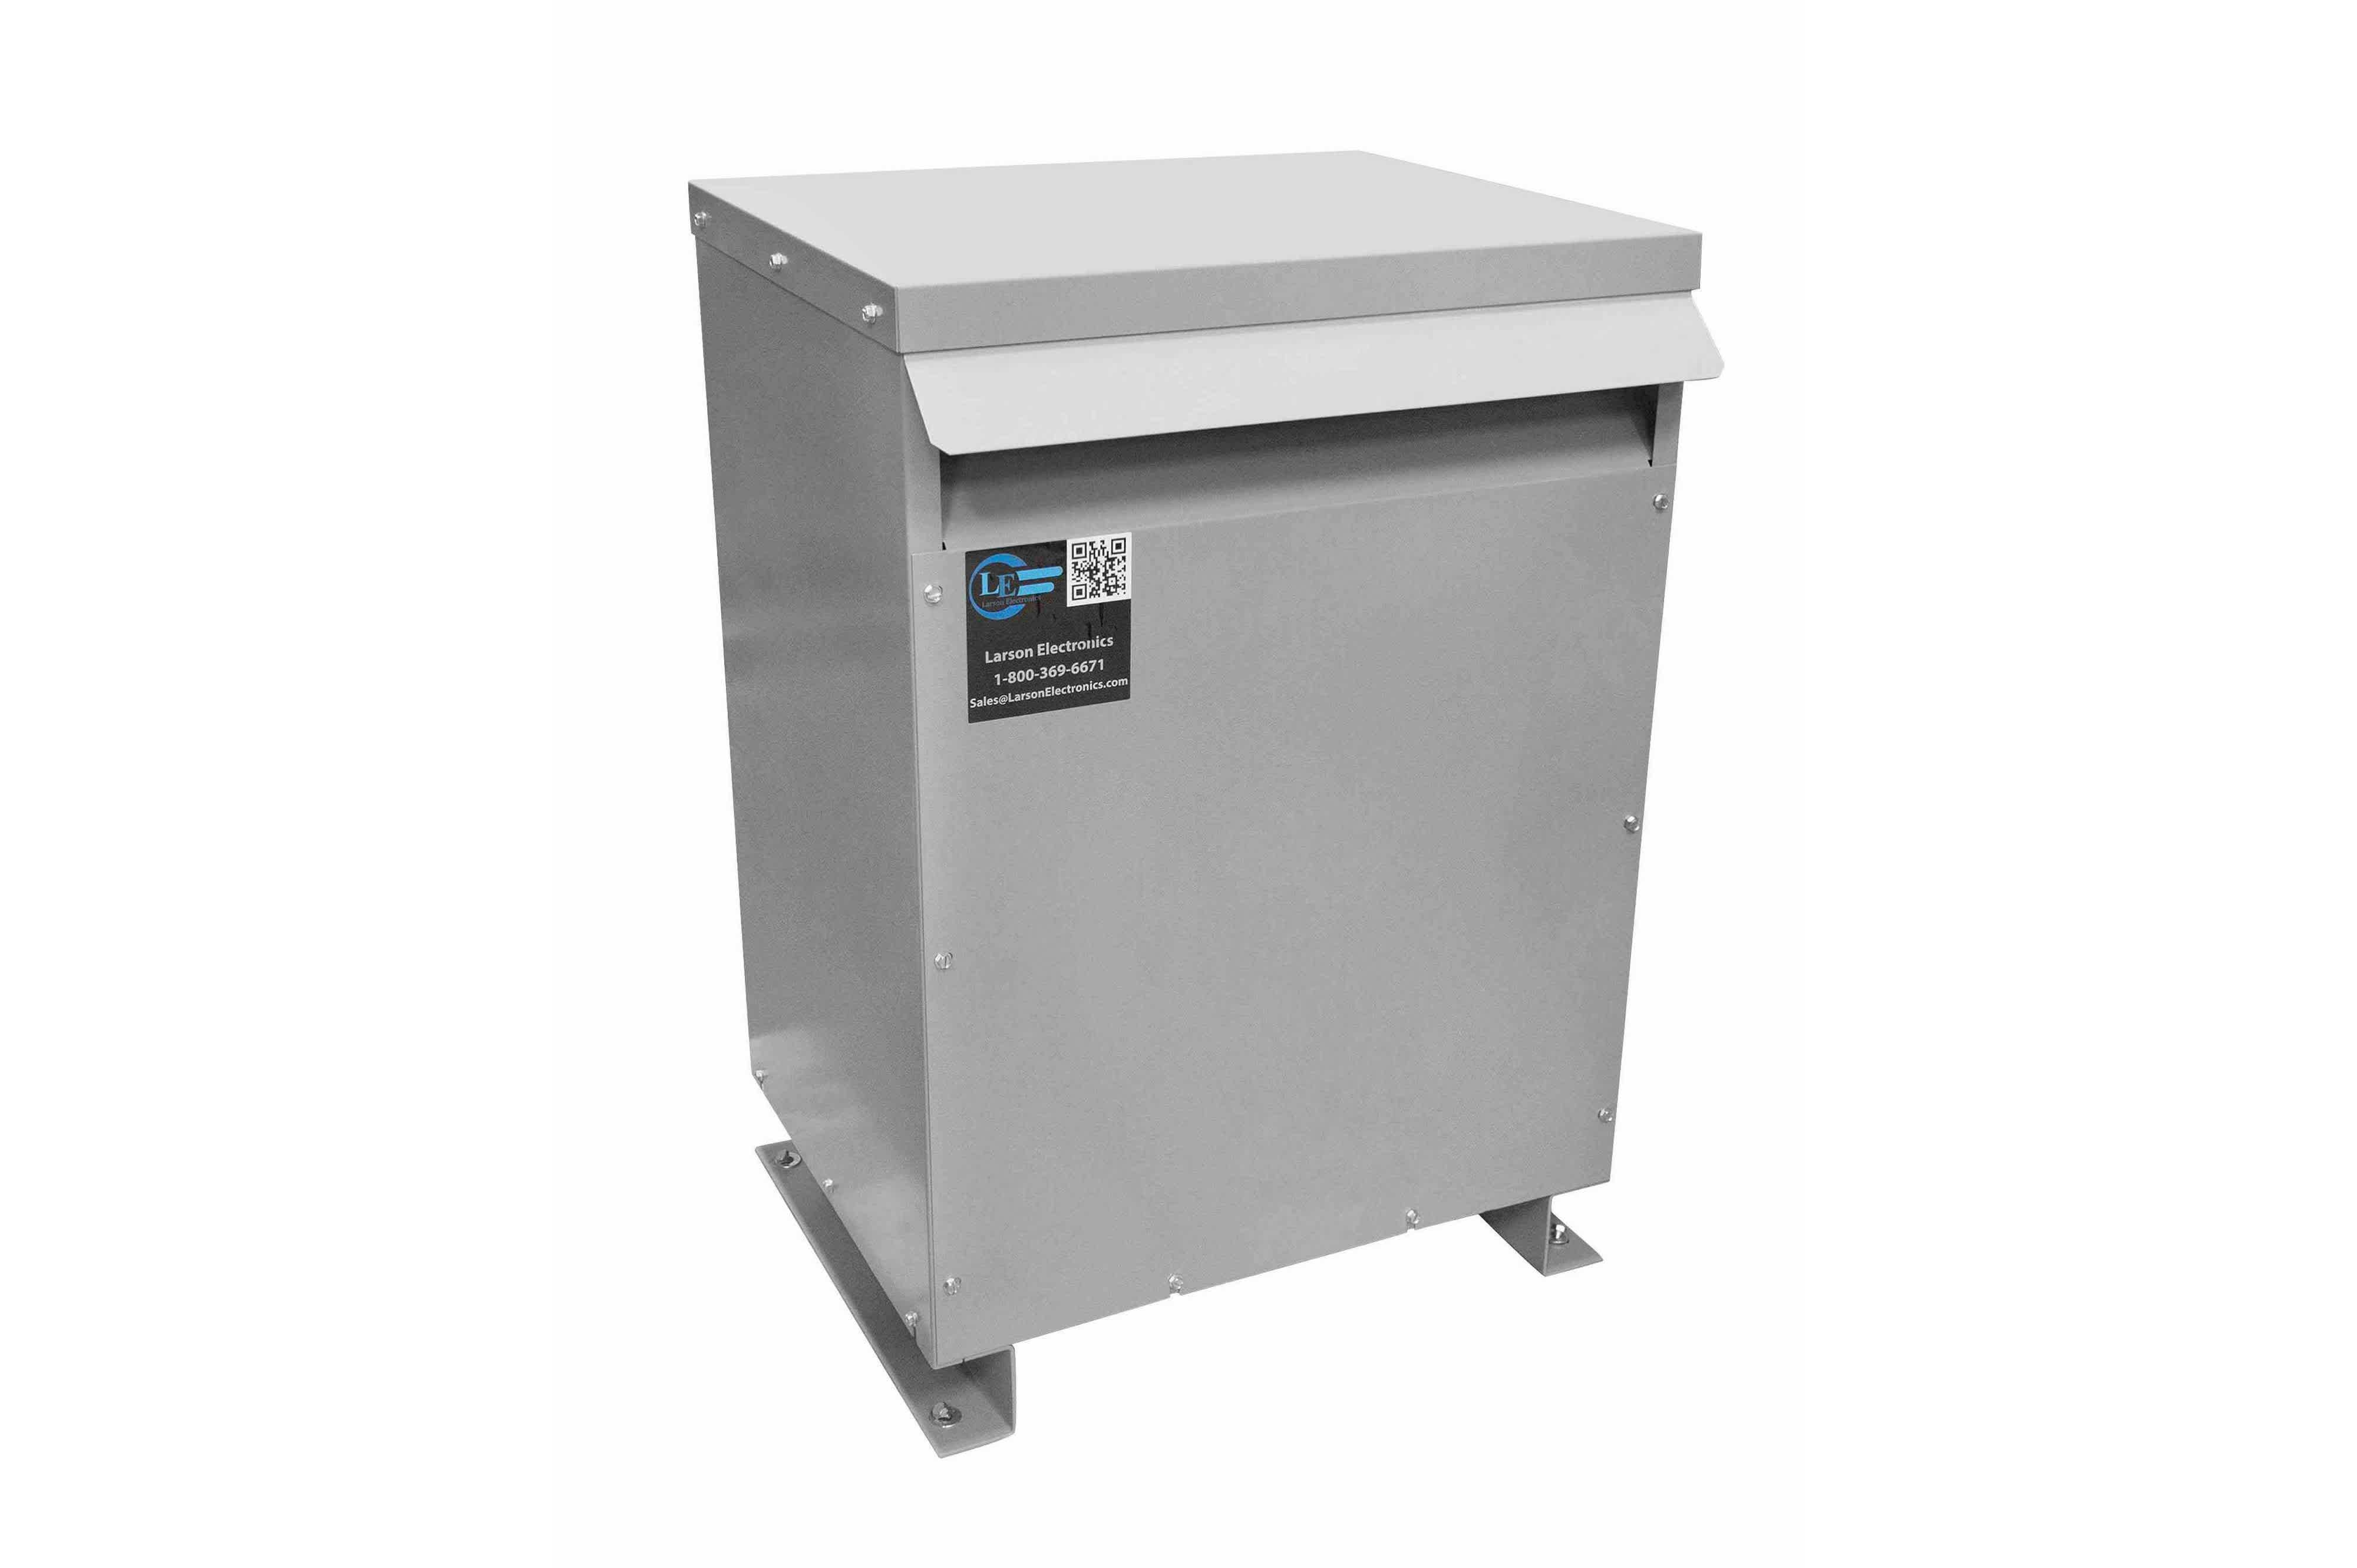 137.5 kVA 3PH Isolation Transformer, 480V Wye Primary, 240V Delta Secondary, N3R, Ventilated, 60 Hz